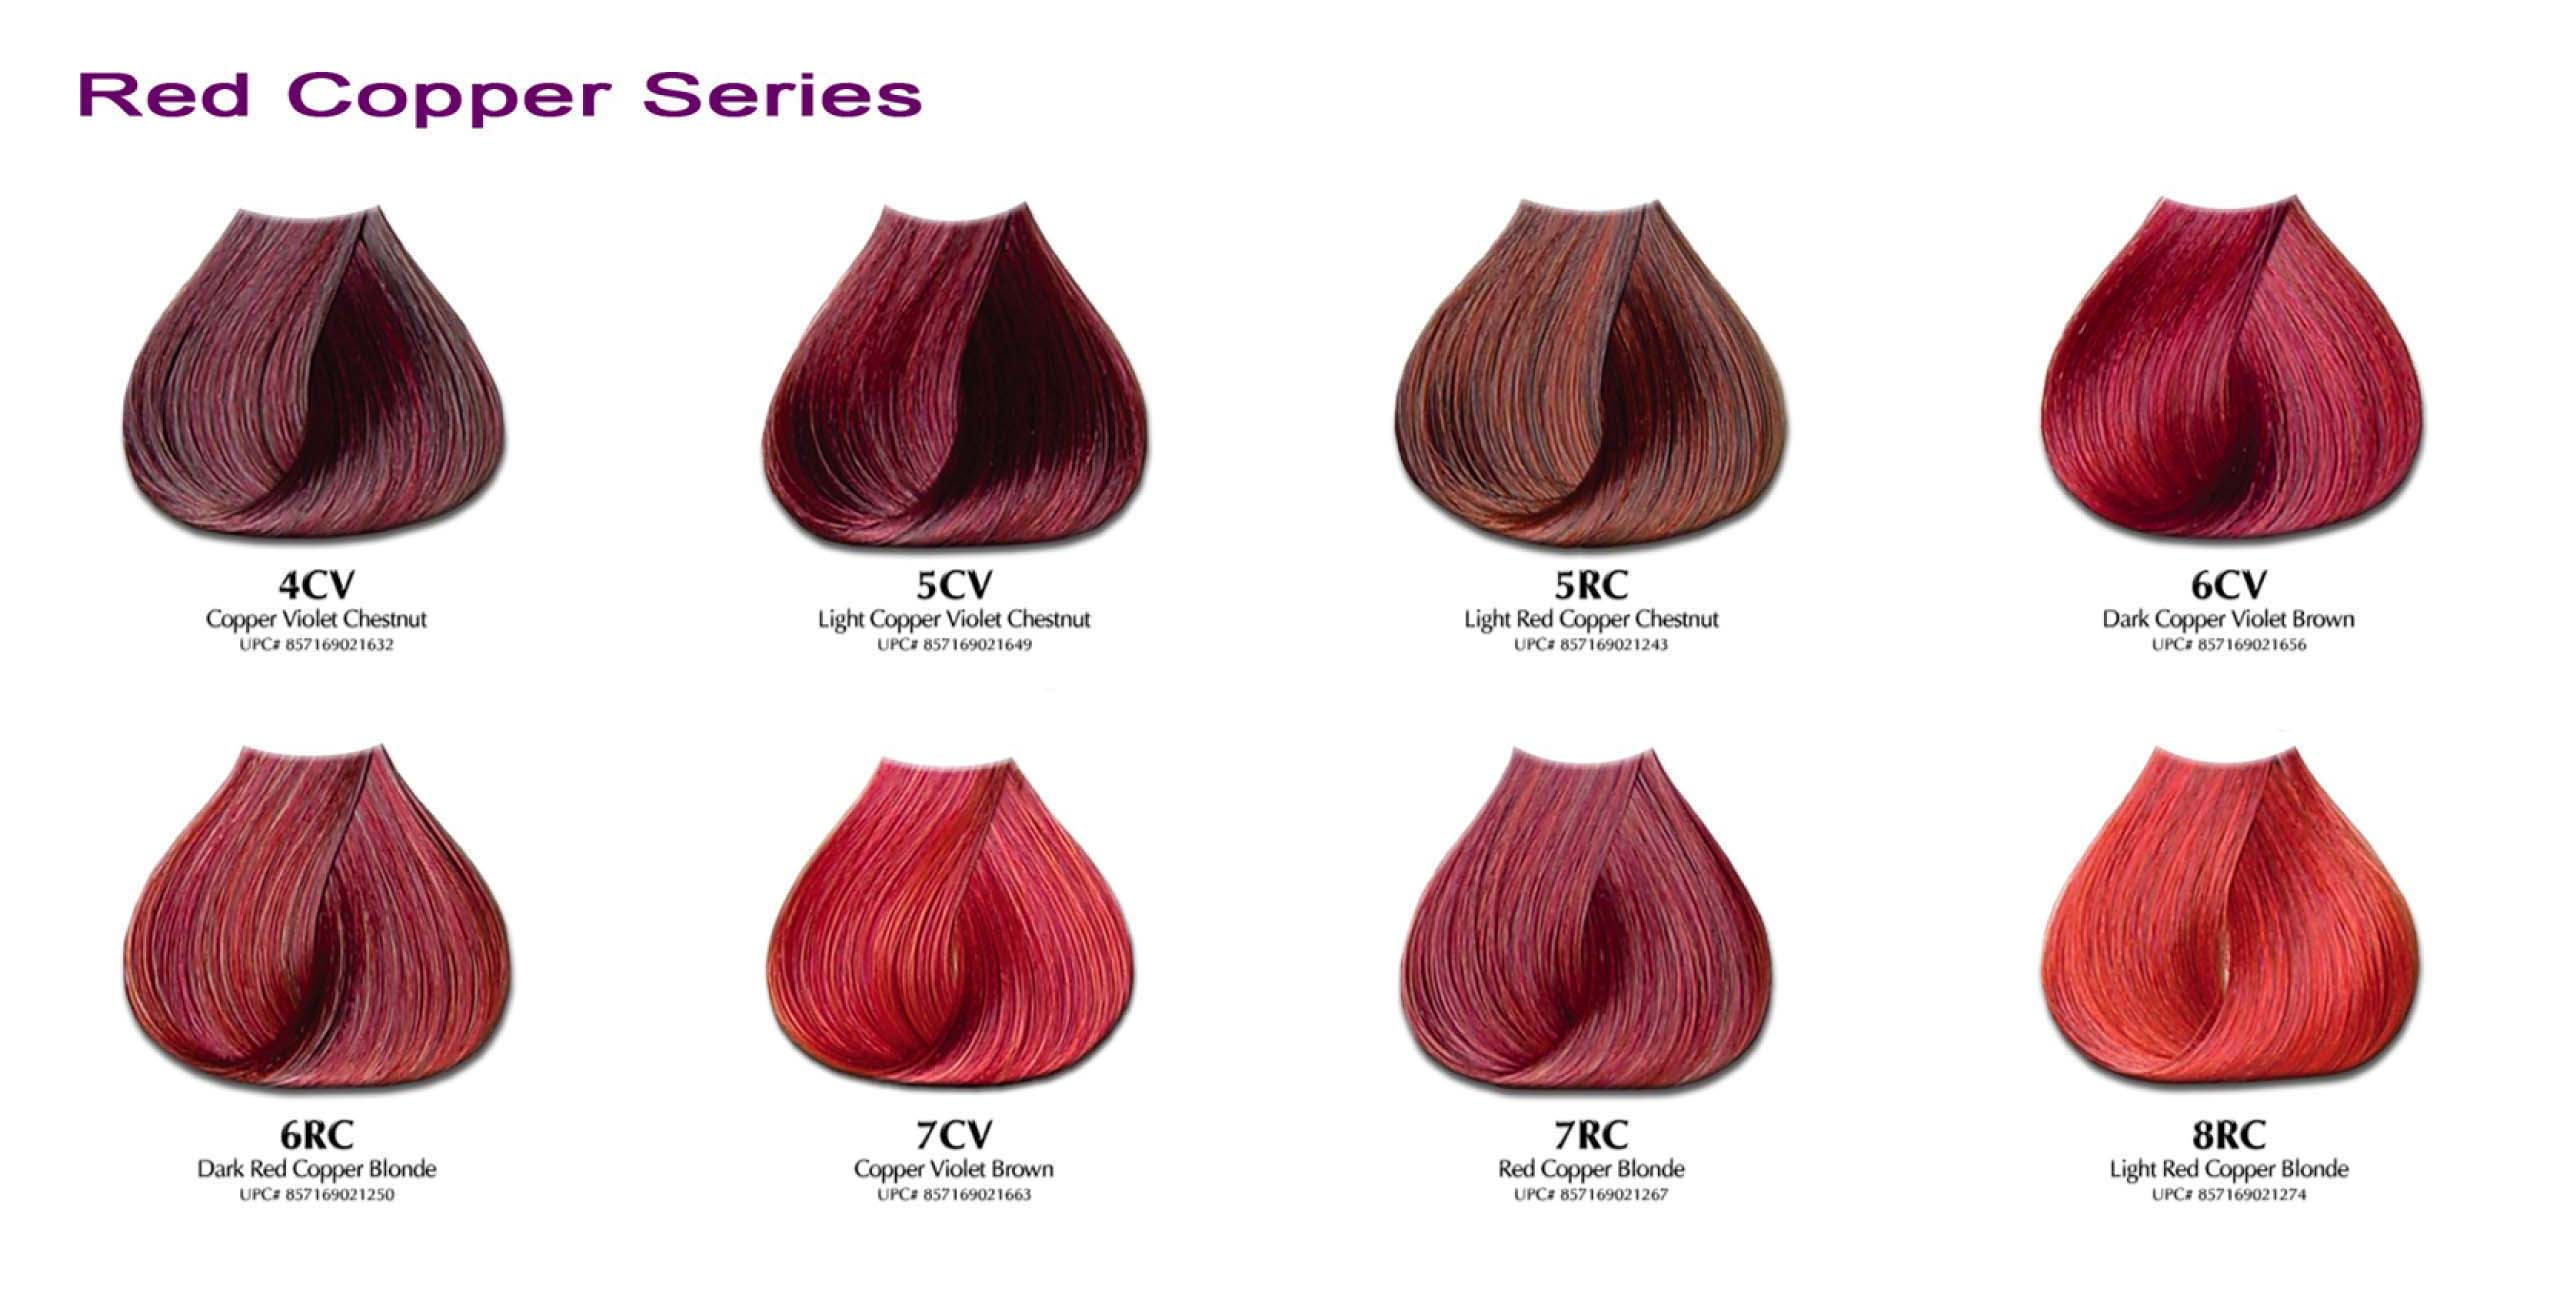 Satin hair colors buy online hair colors ysb beauty nvjuhfo Gallery